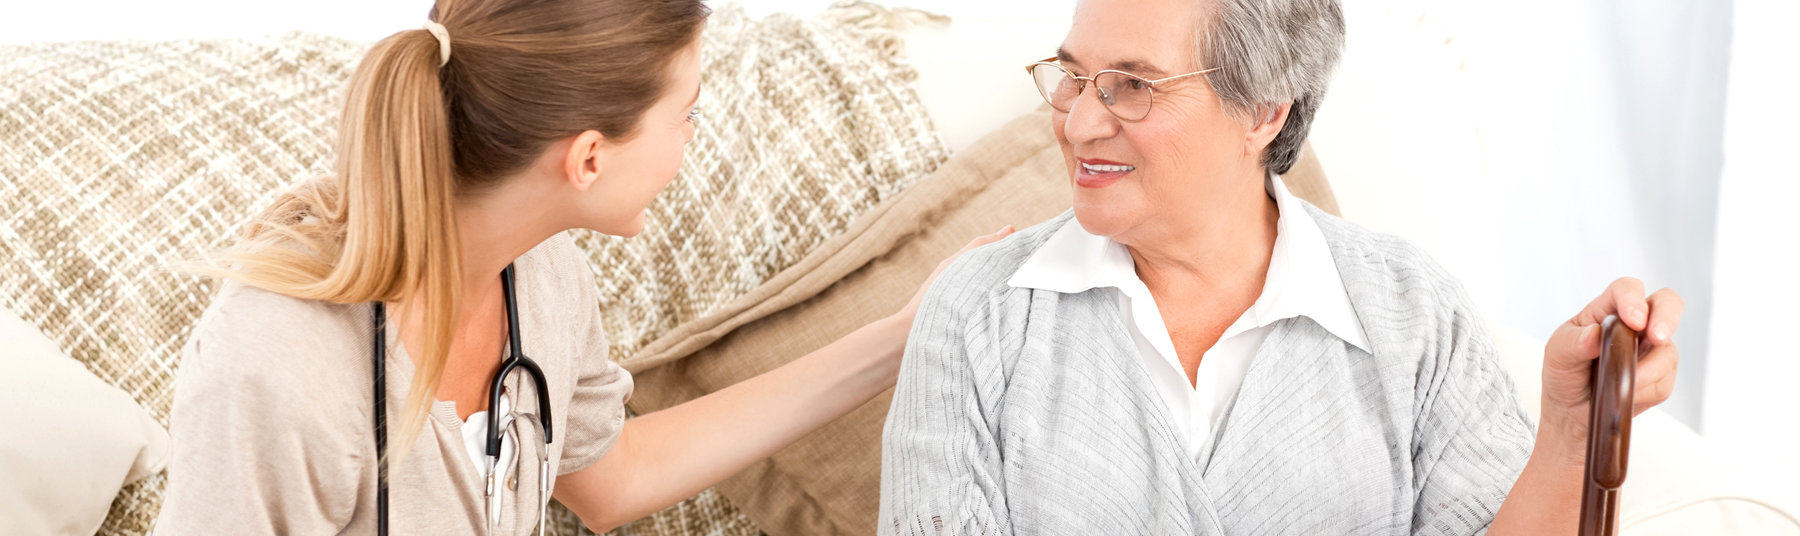 Wound care treatment around Janesville, WI